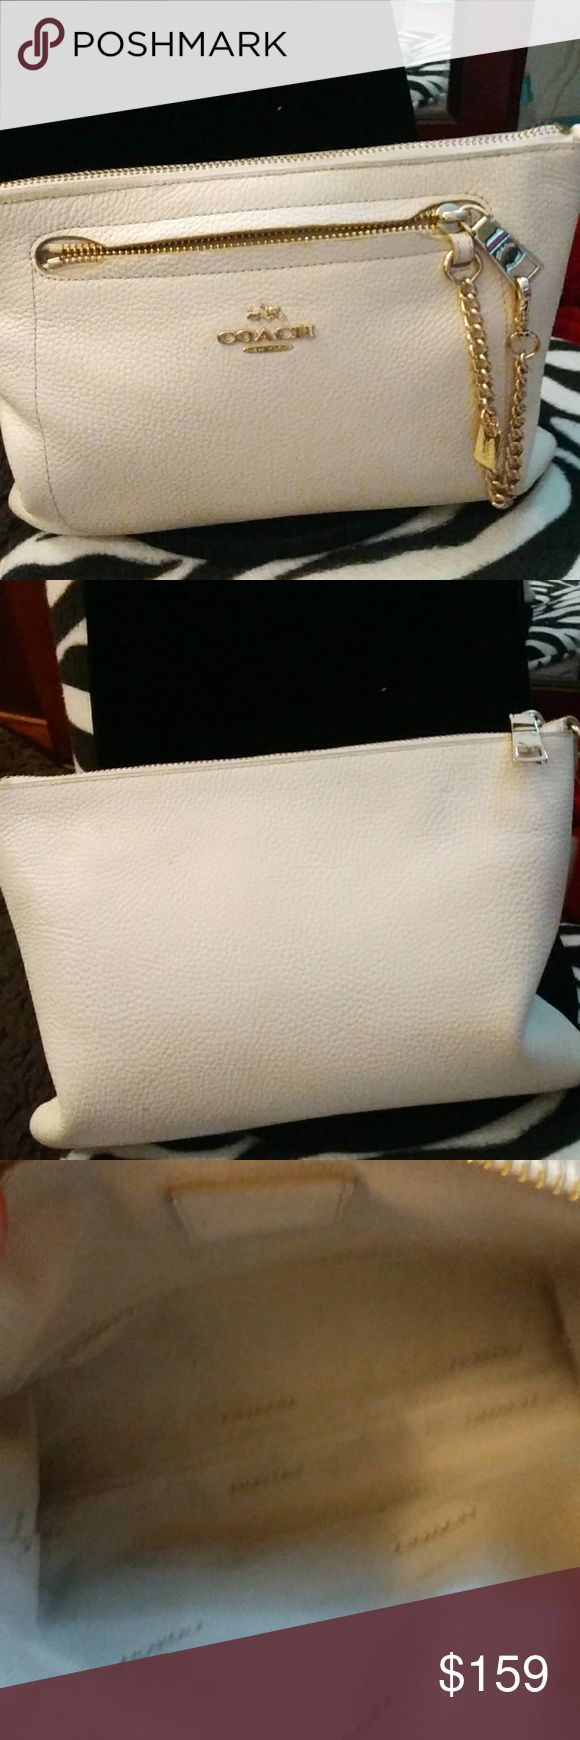 Coach Clutch Outside looks like new inside looks dirty were I carry all my makeup in it still looks great i like carrying this large wristlet in bigger bag put all my stuff in it do its not loose in my bags Coach Bags Clutches & Wristlets